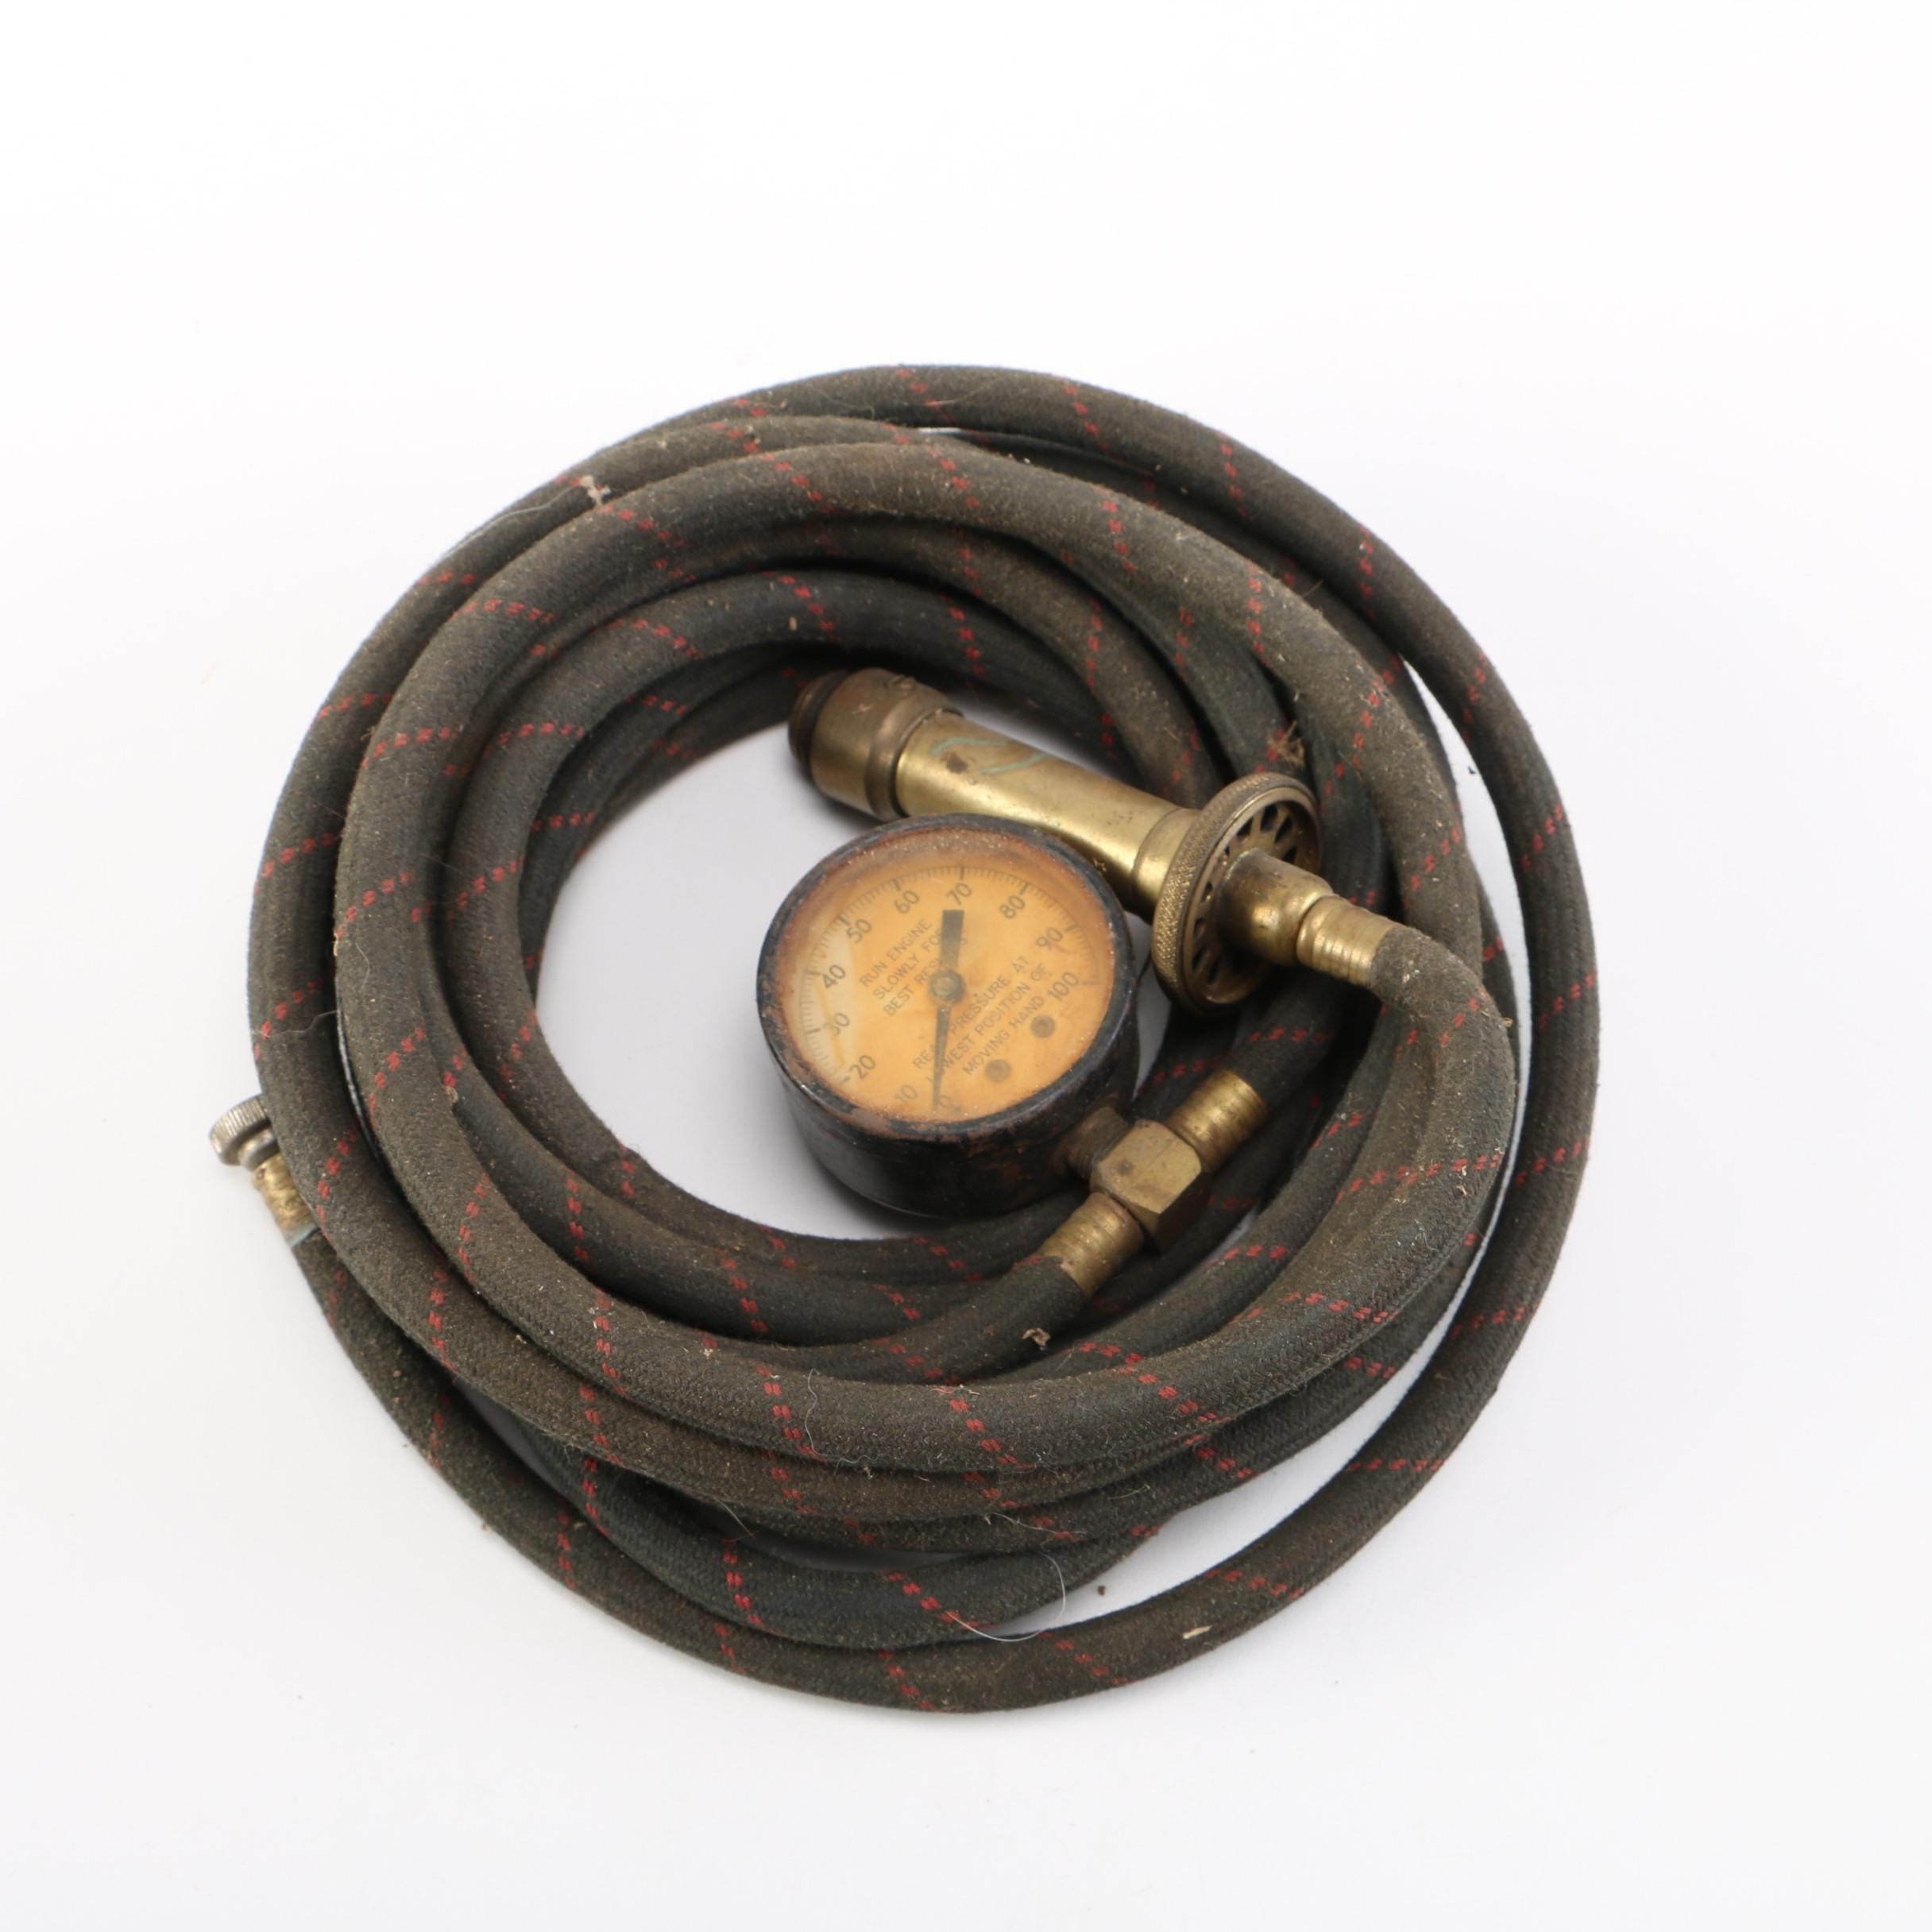 Vintage Tractor Tire Inflator